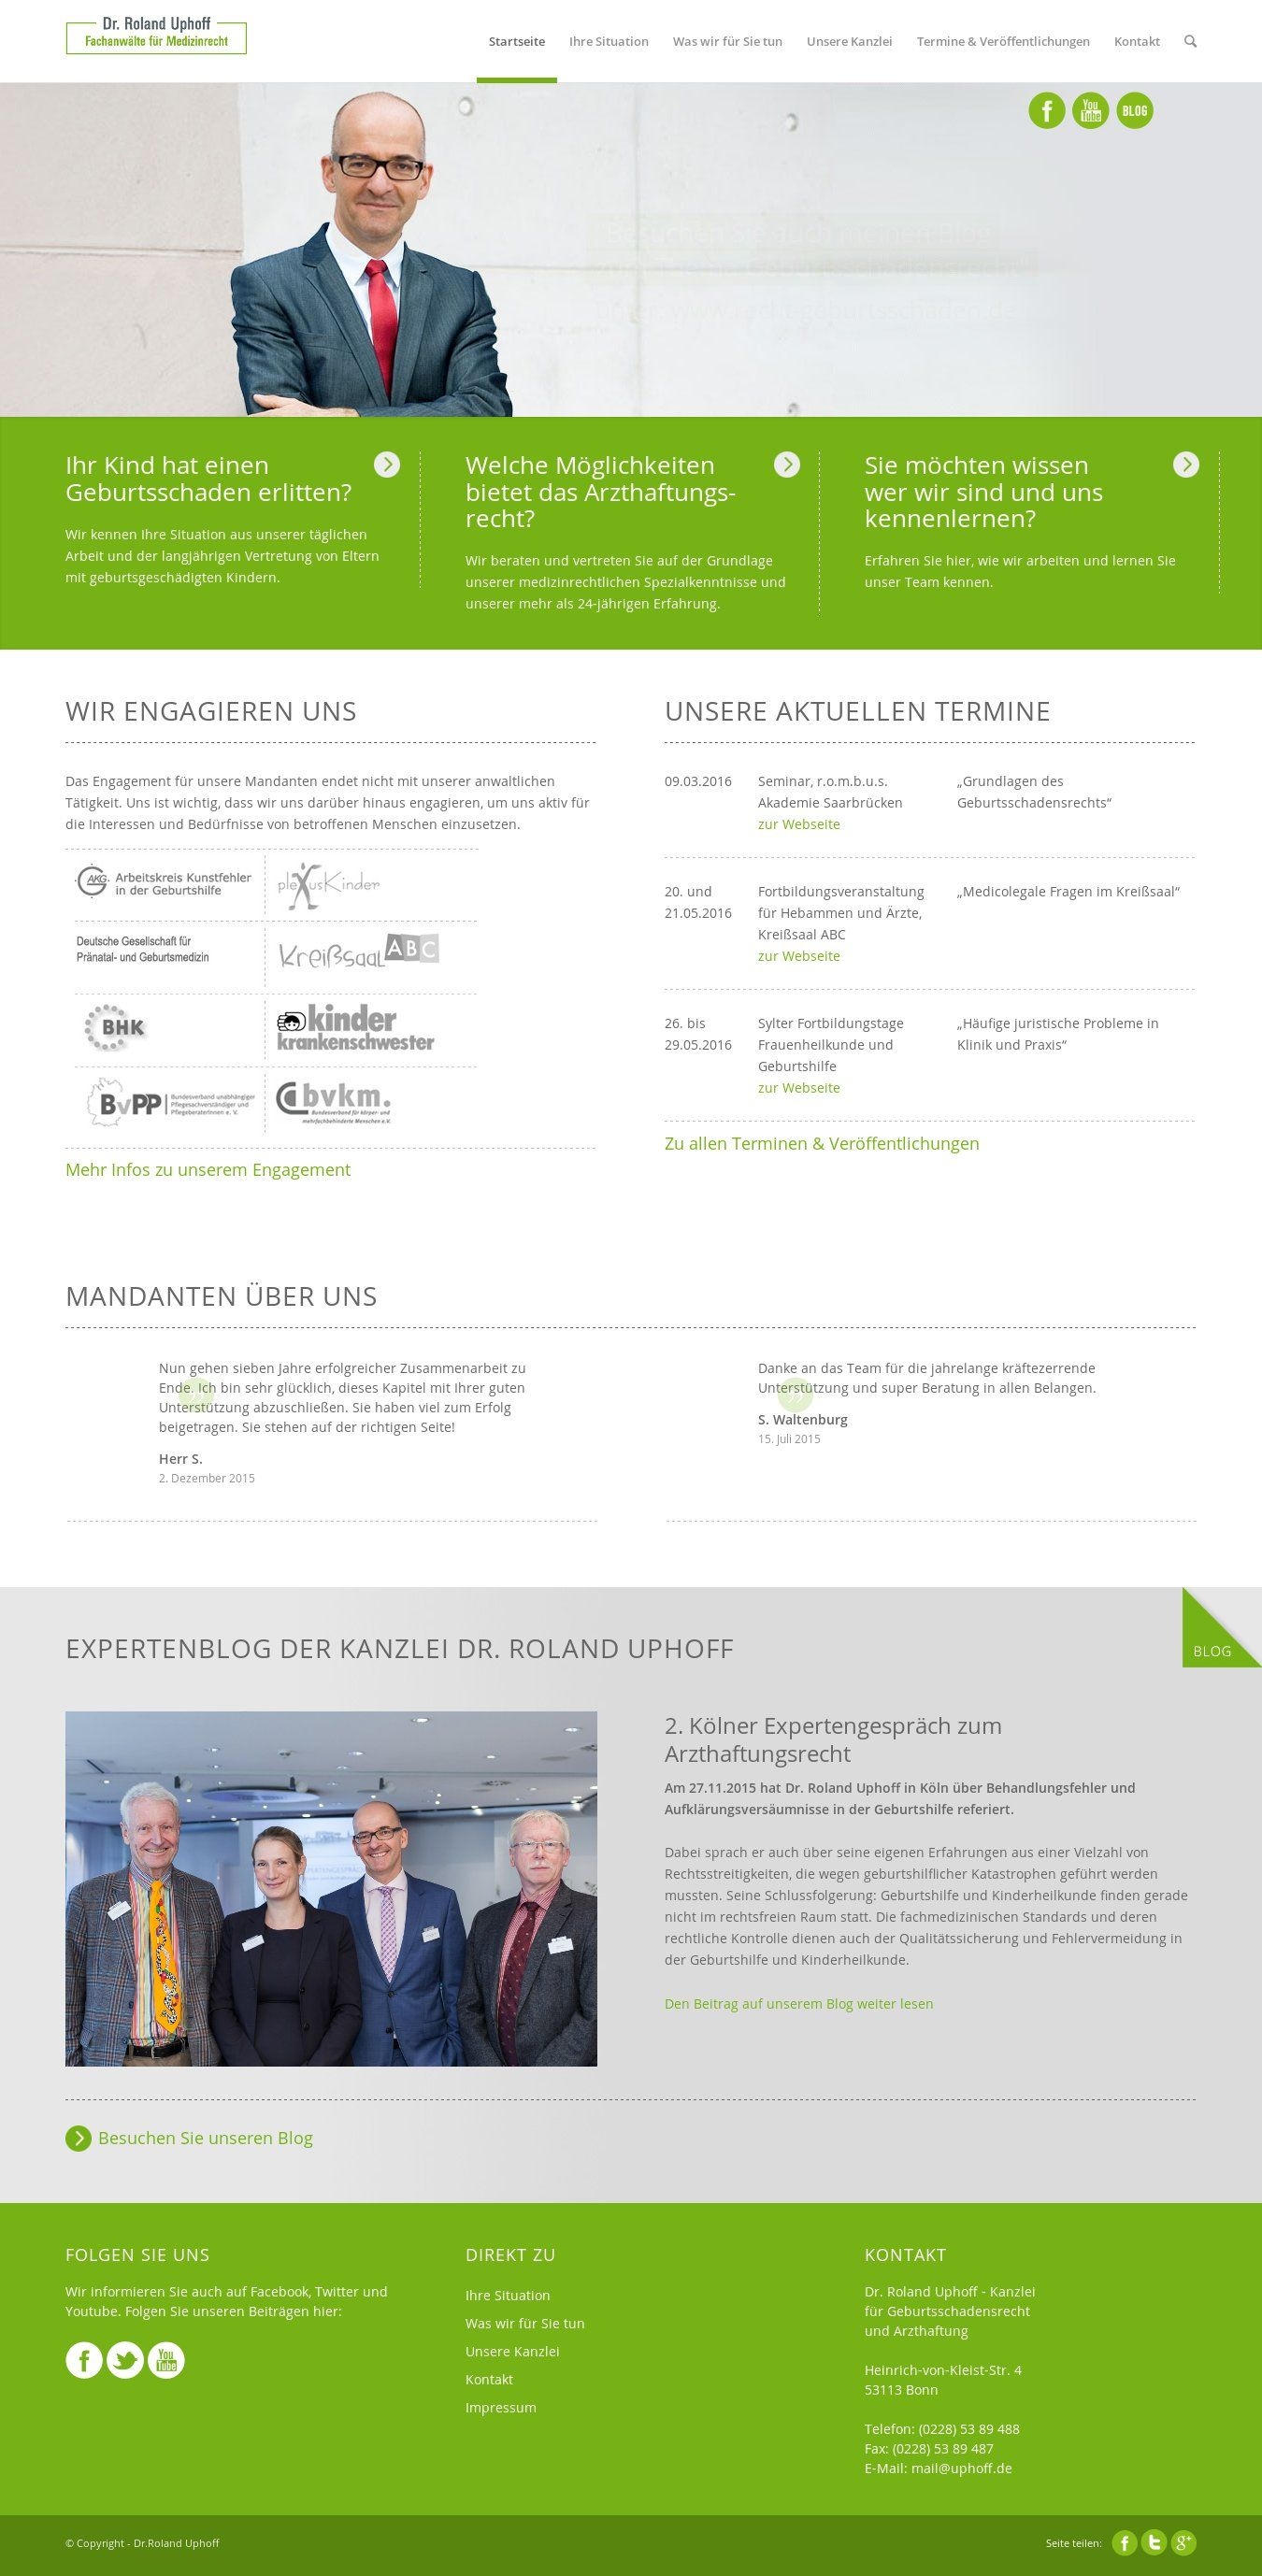 WordPress site schulterdystokie.de uses the Wordpress template ...